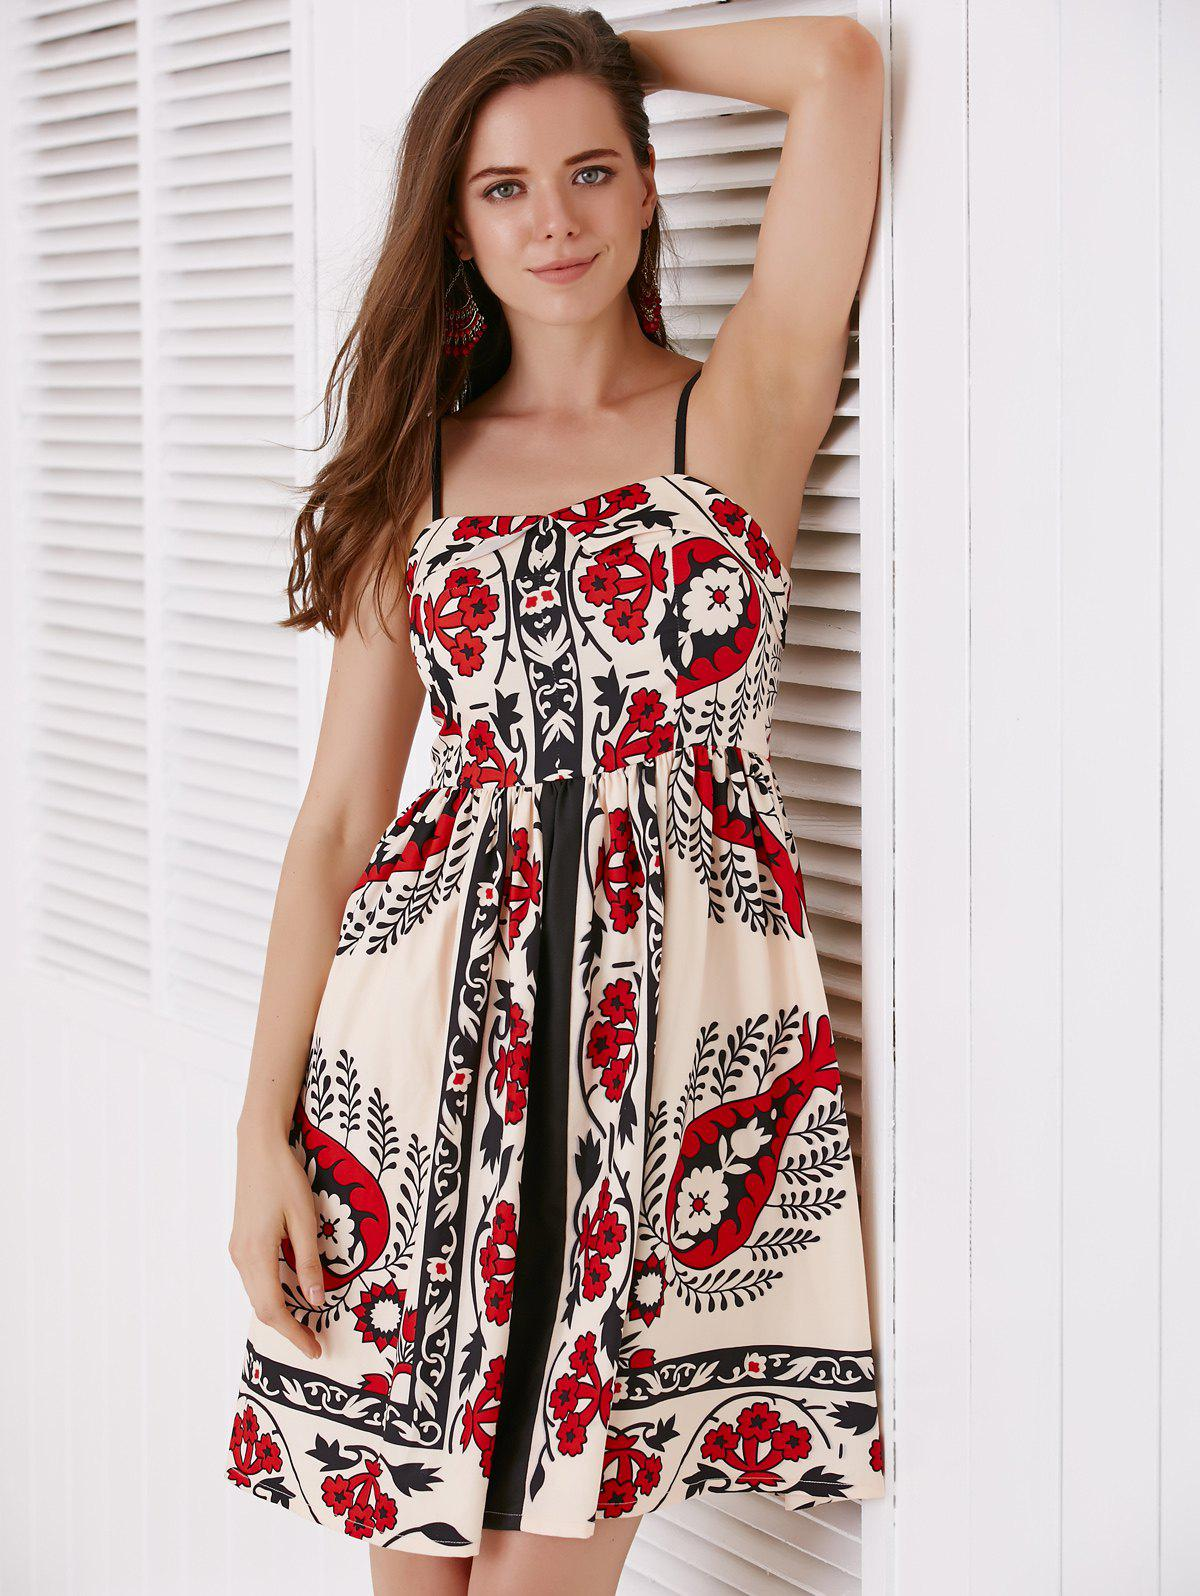 Ethnic Style Spaghetti Strap Print A-Line Dress For Women - COLORMIX L